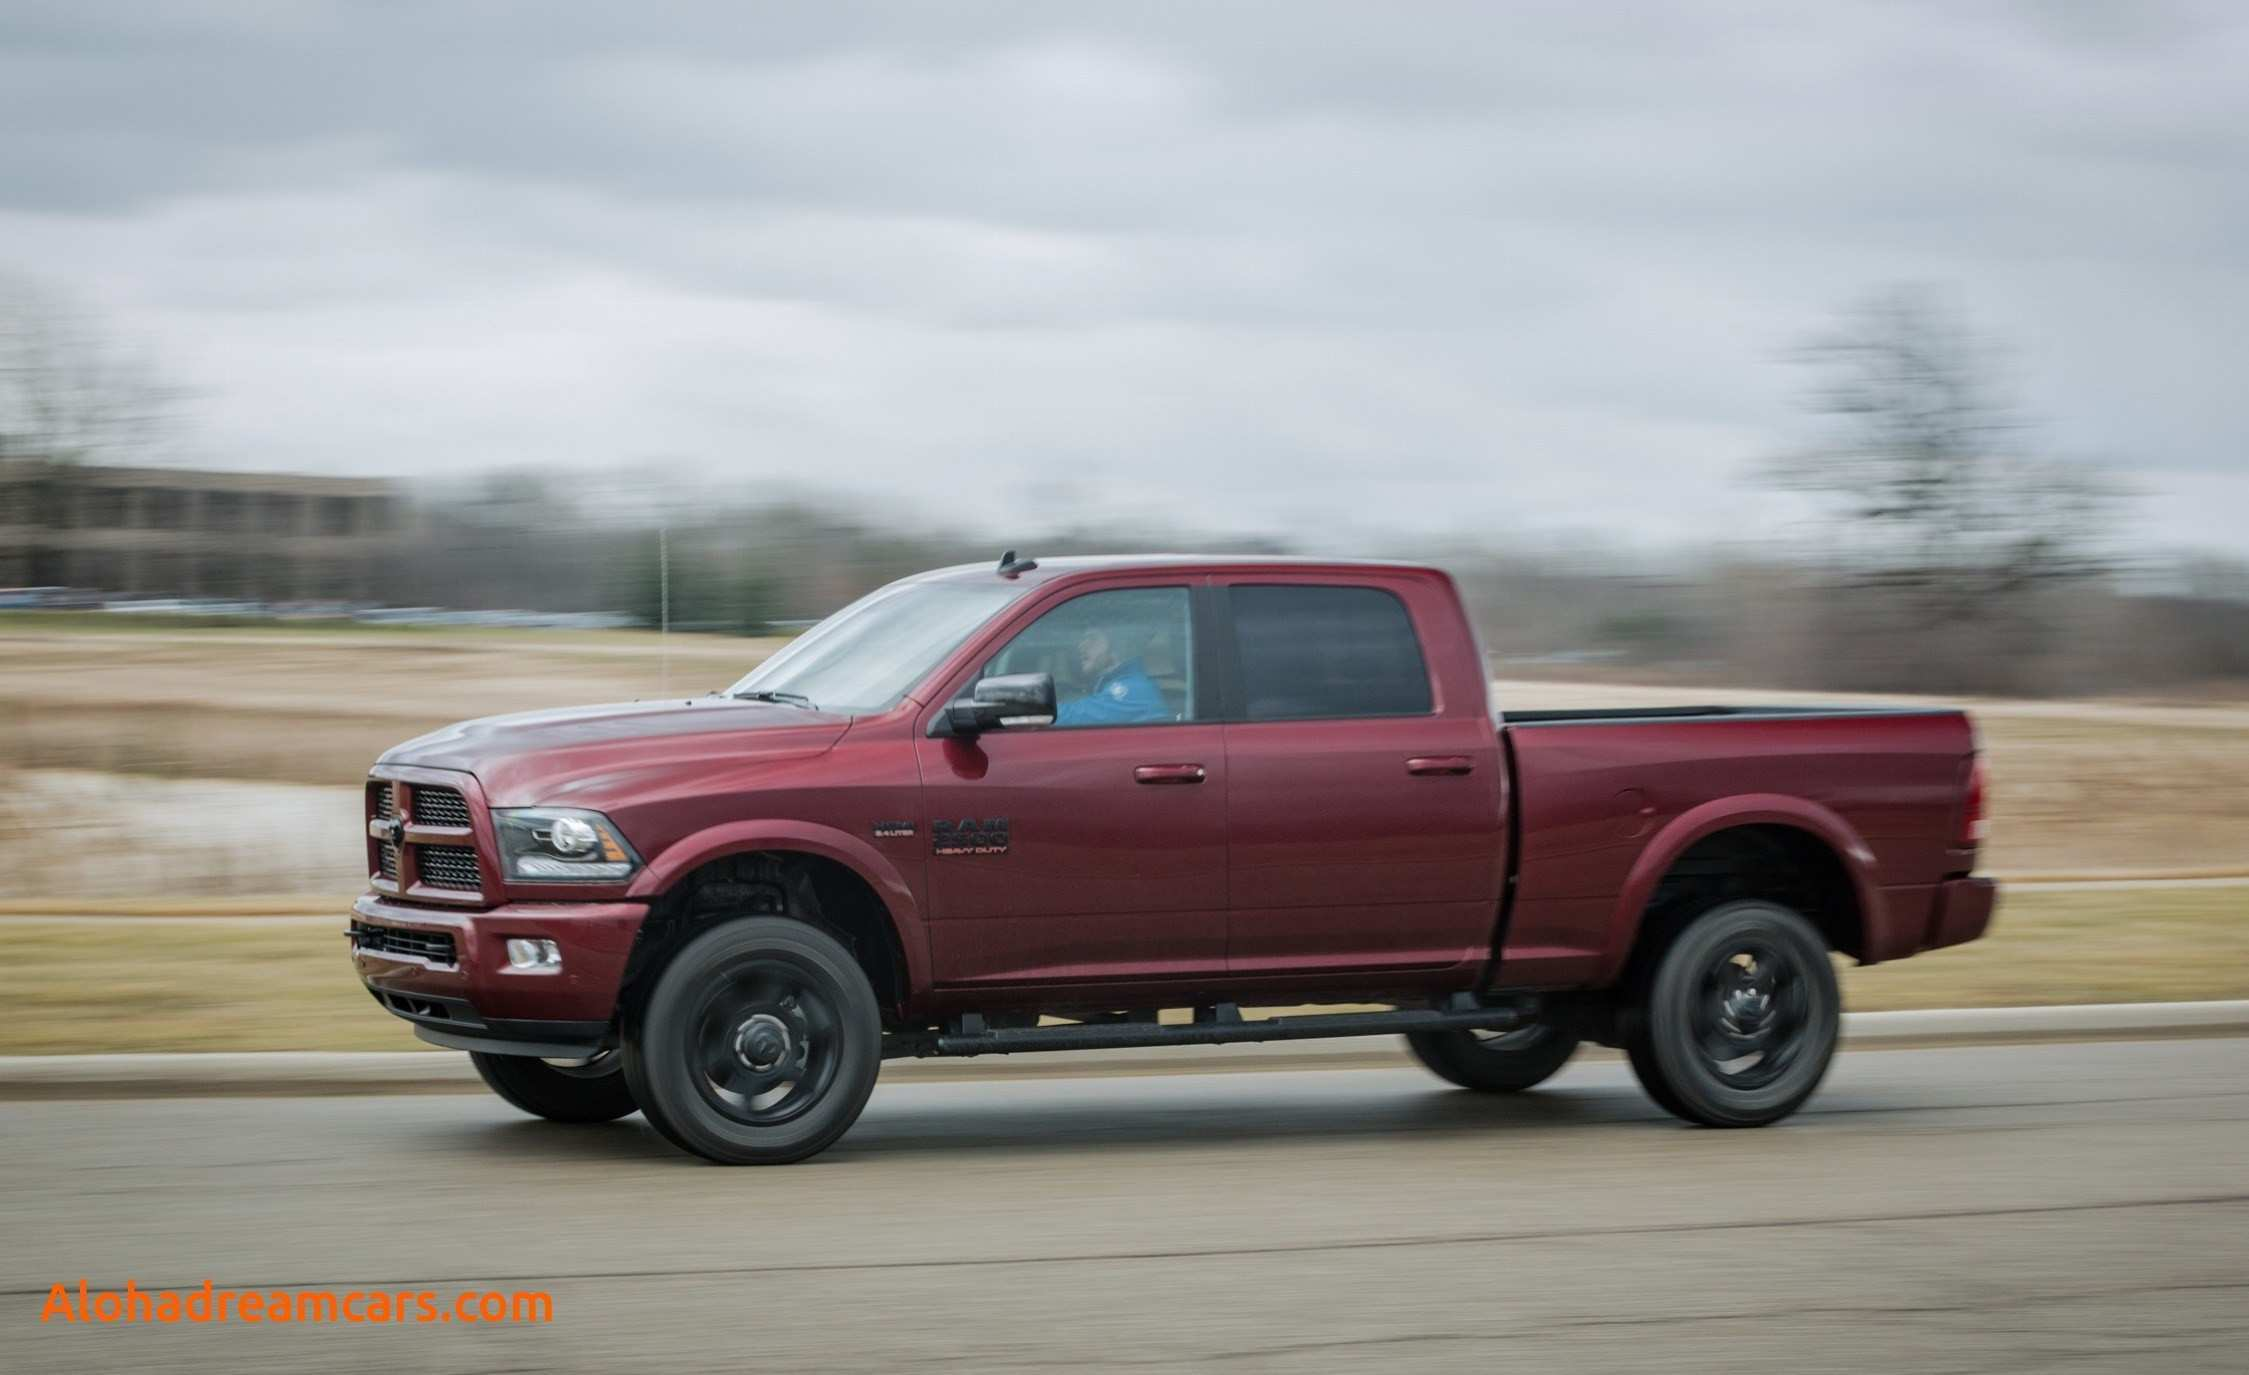 64 Best Review New Ram Dodge 2019 Picture Release Date And Review Photos with New Ram Dodge 2019 Picture Release Date And Review